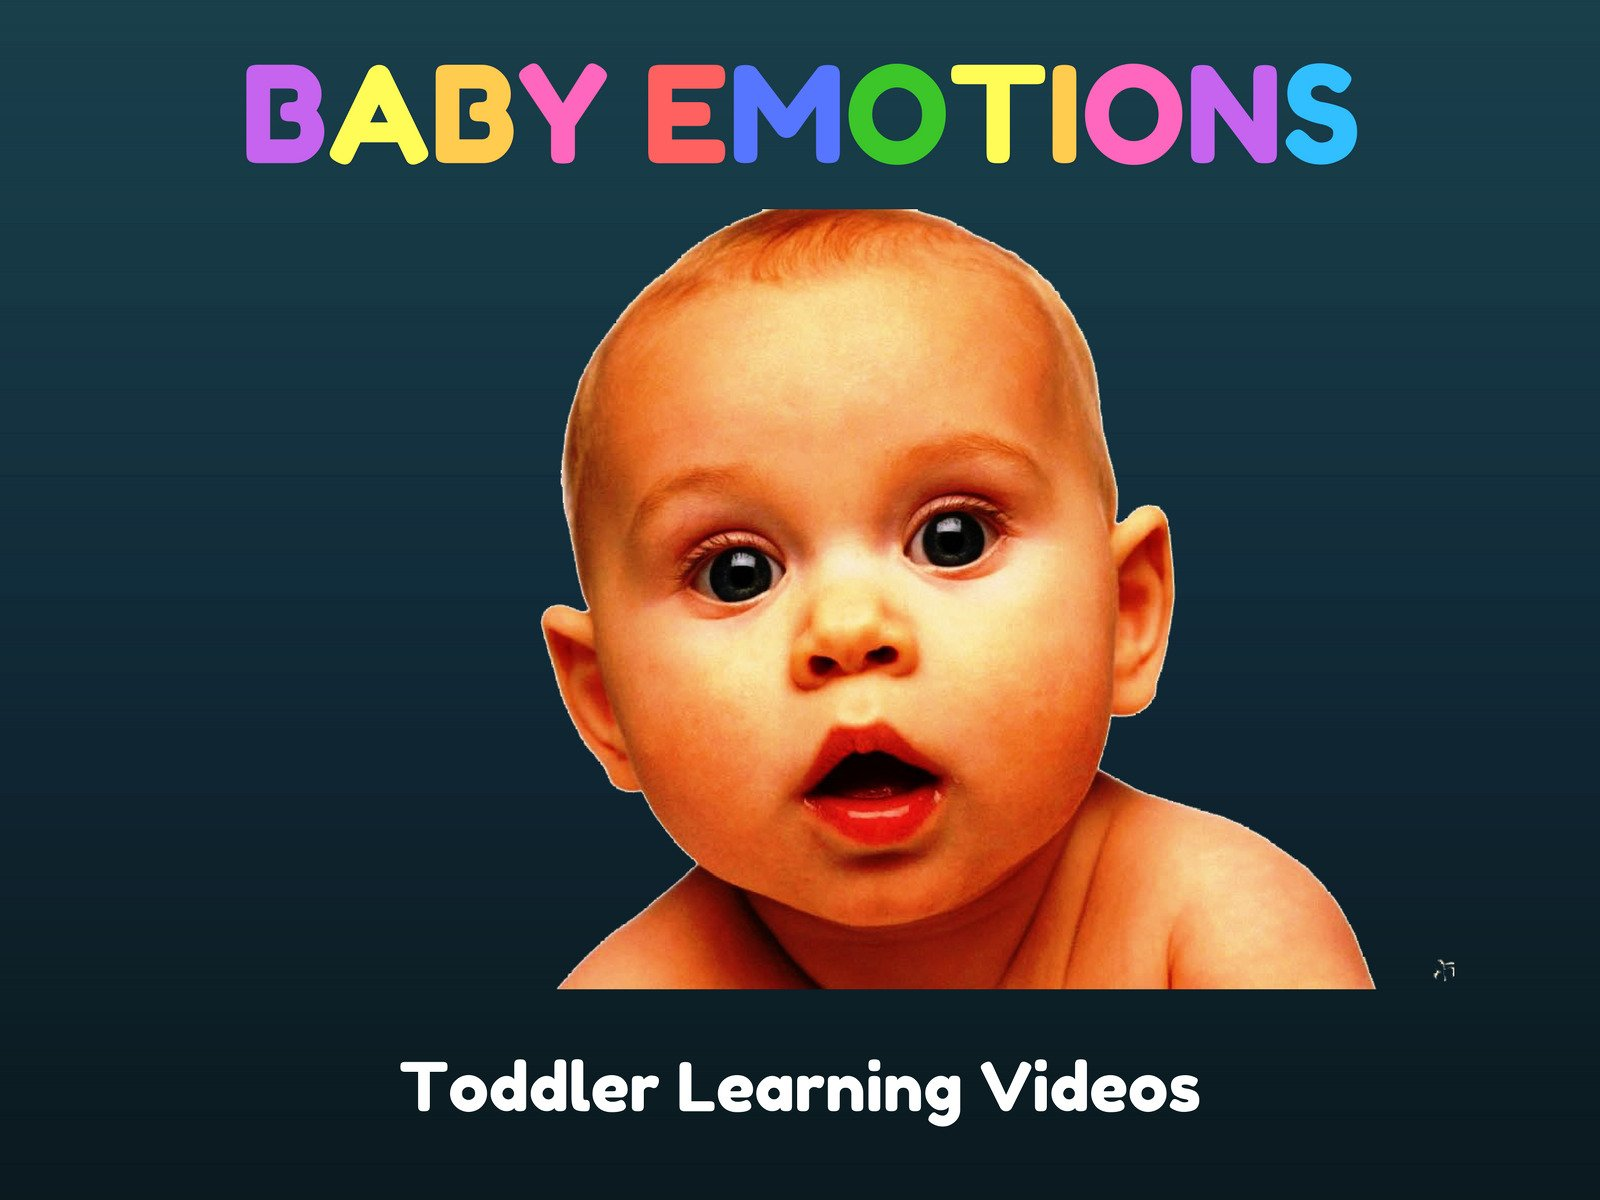 Baby Emotions: Toddler Learning Videos - Season 1